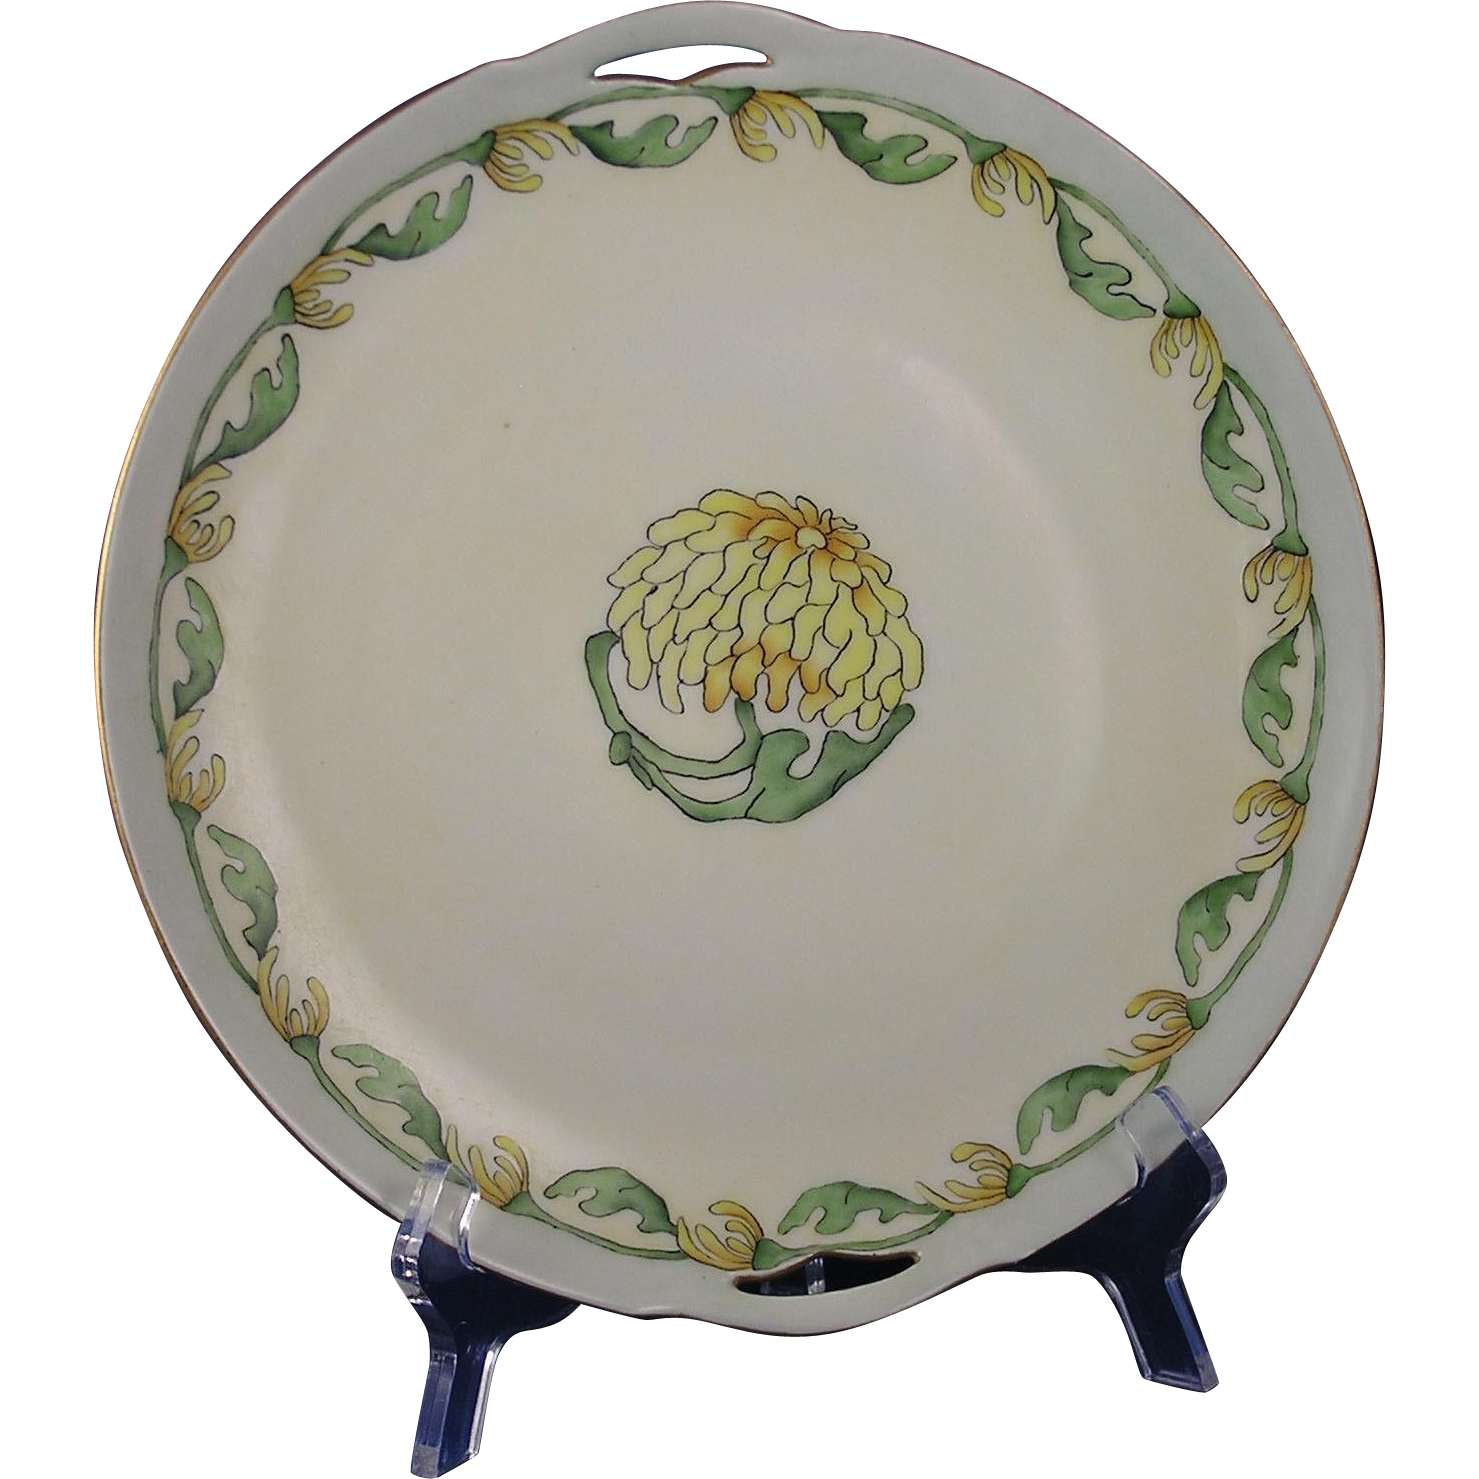 Krister Porcelain Manufactory (KPM) Germany Arts & Crafts Floral Motif Handled Plate (c.1904-1927)